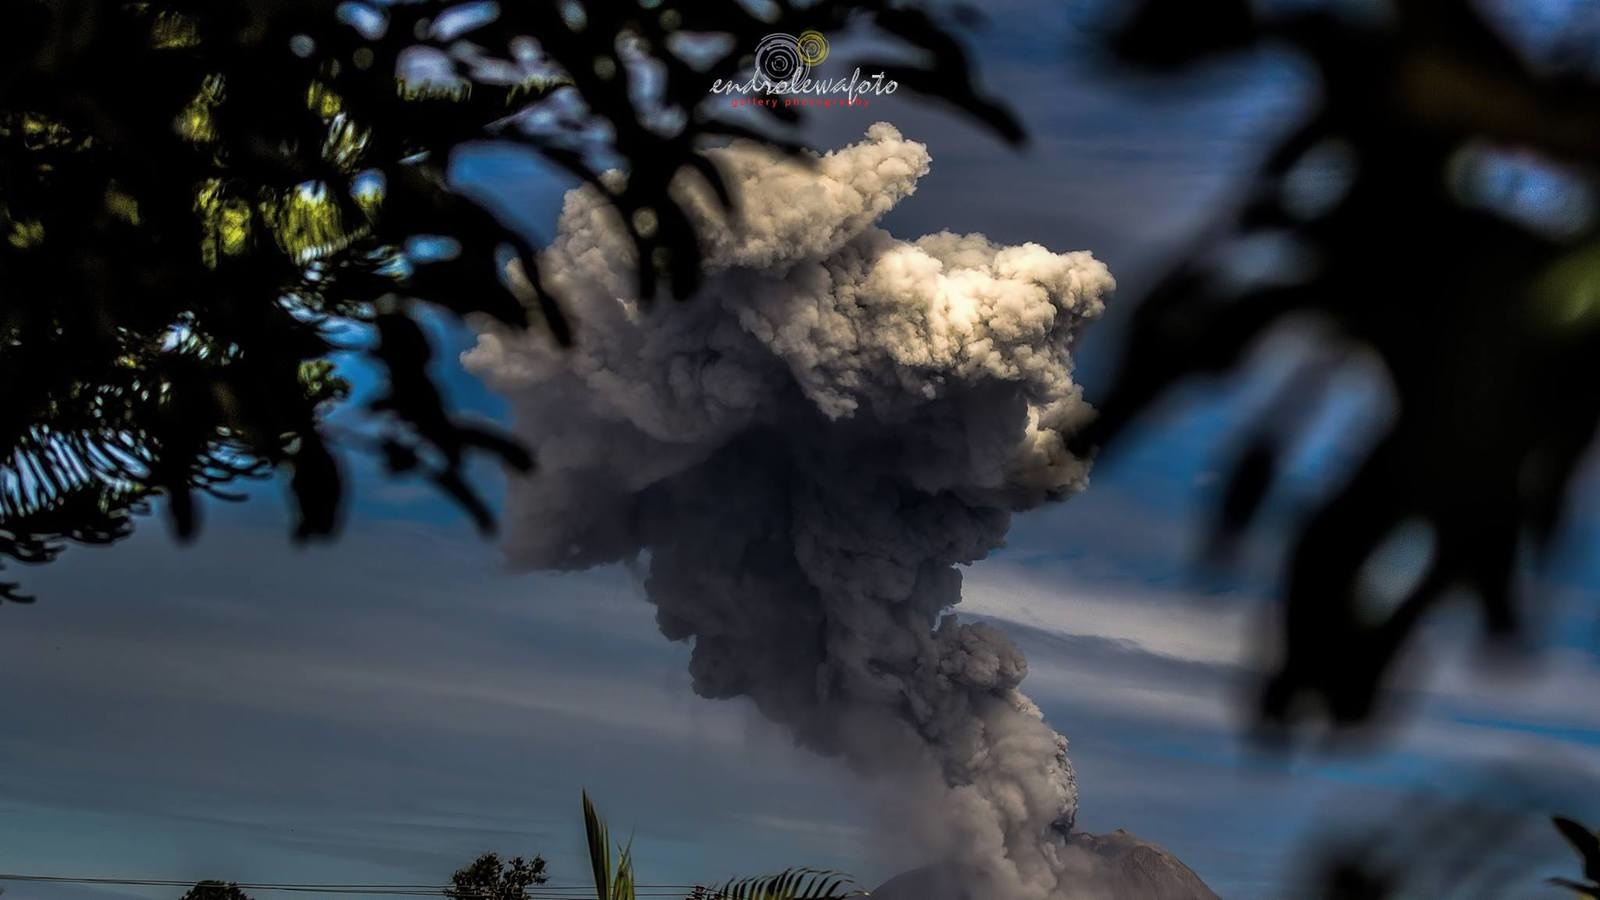 sinabung volcano july 7 2016, sinabung volcano july 7 2016 pictures, sinabung volcano july 7 2016 video